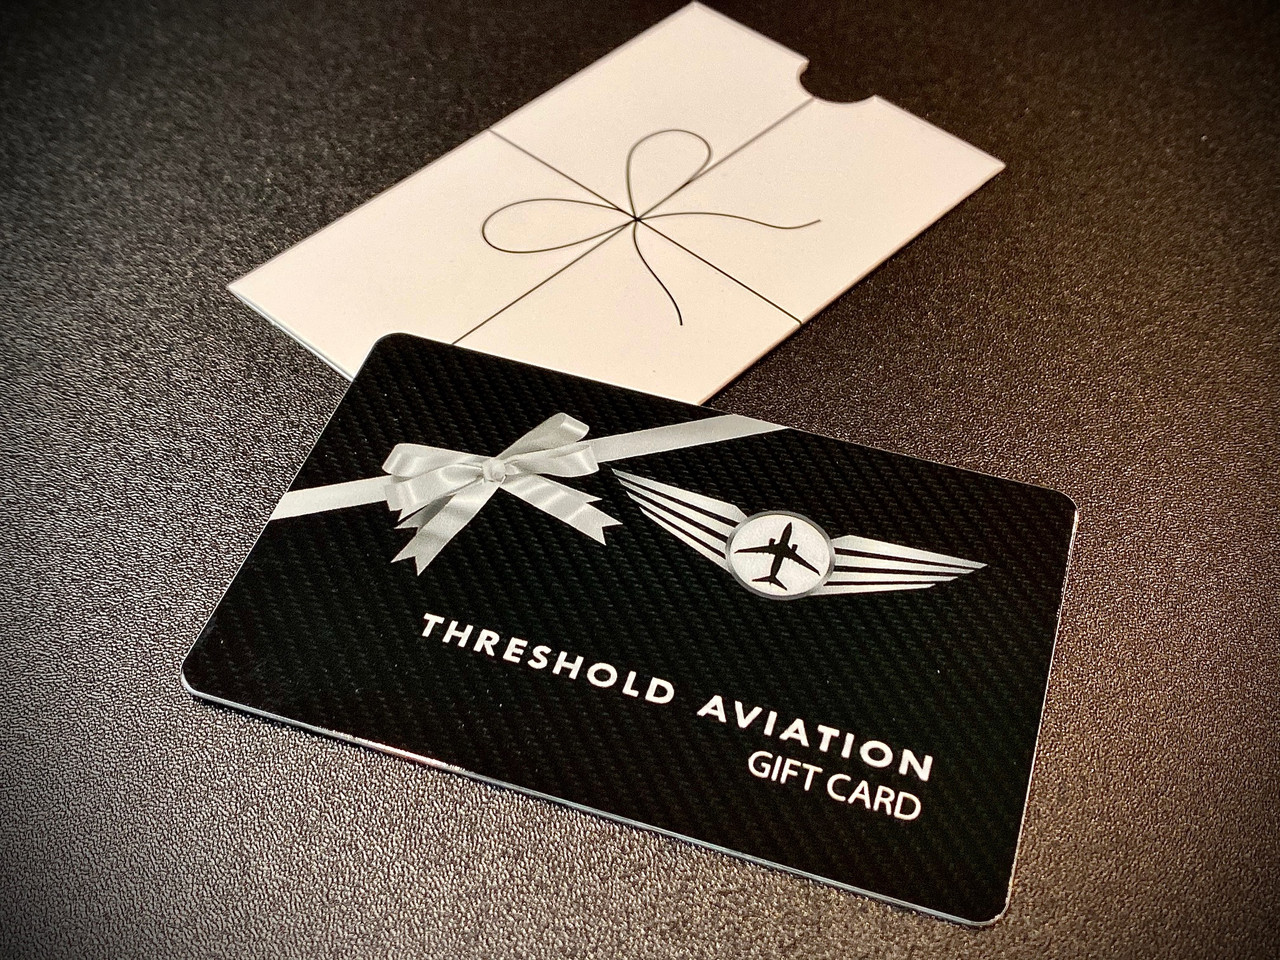 Threshold Aviation Gift Card